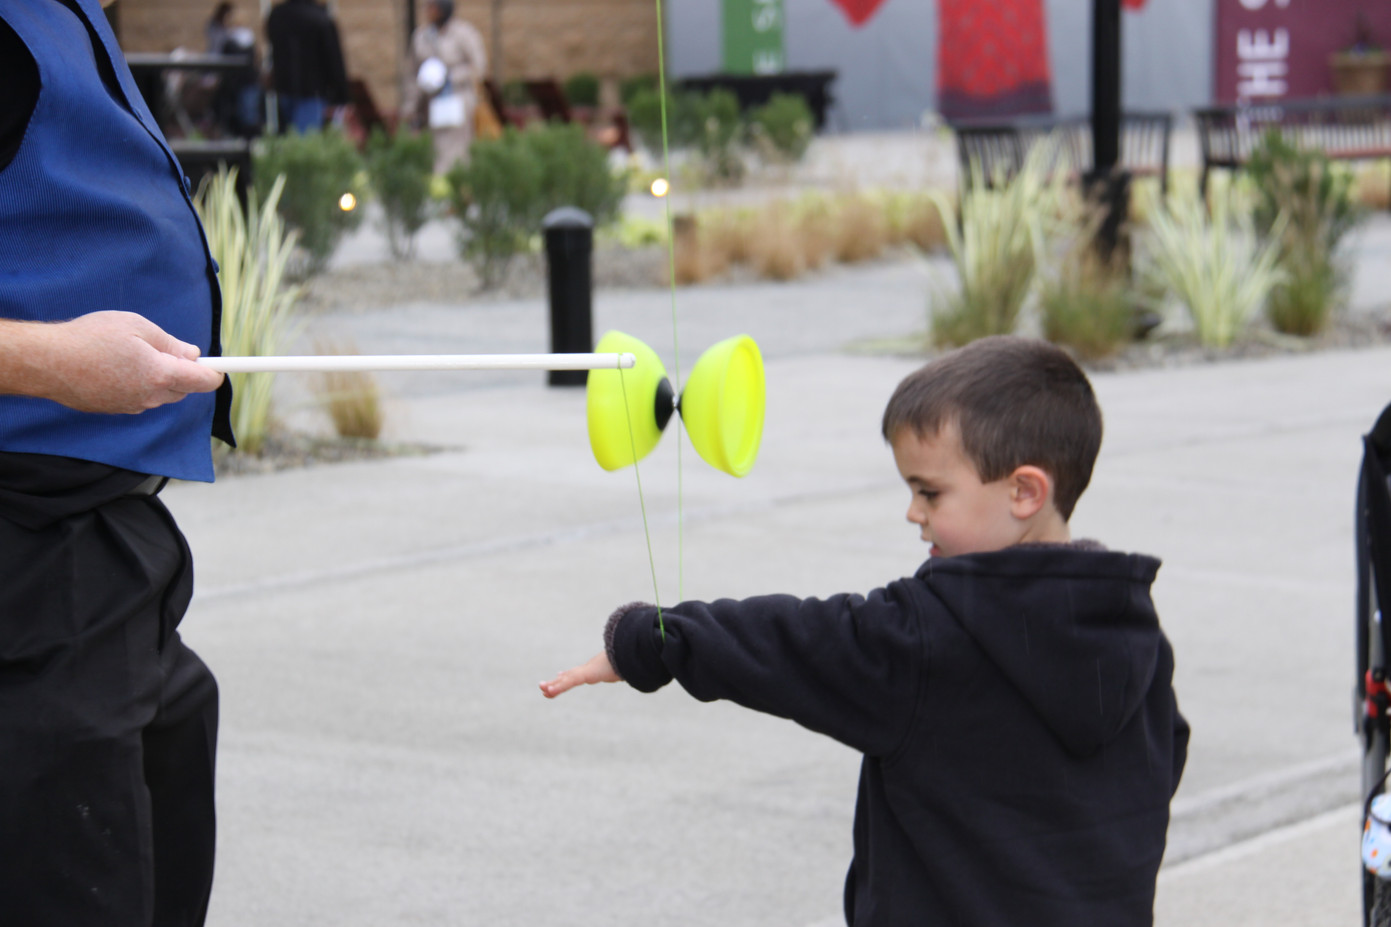 Chinese-Yoyo-Juggling-With-Little-Boy.JPG